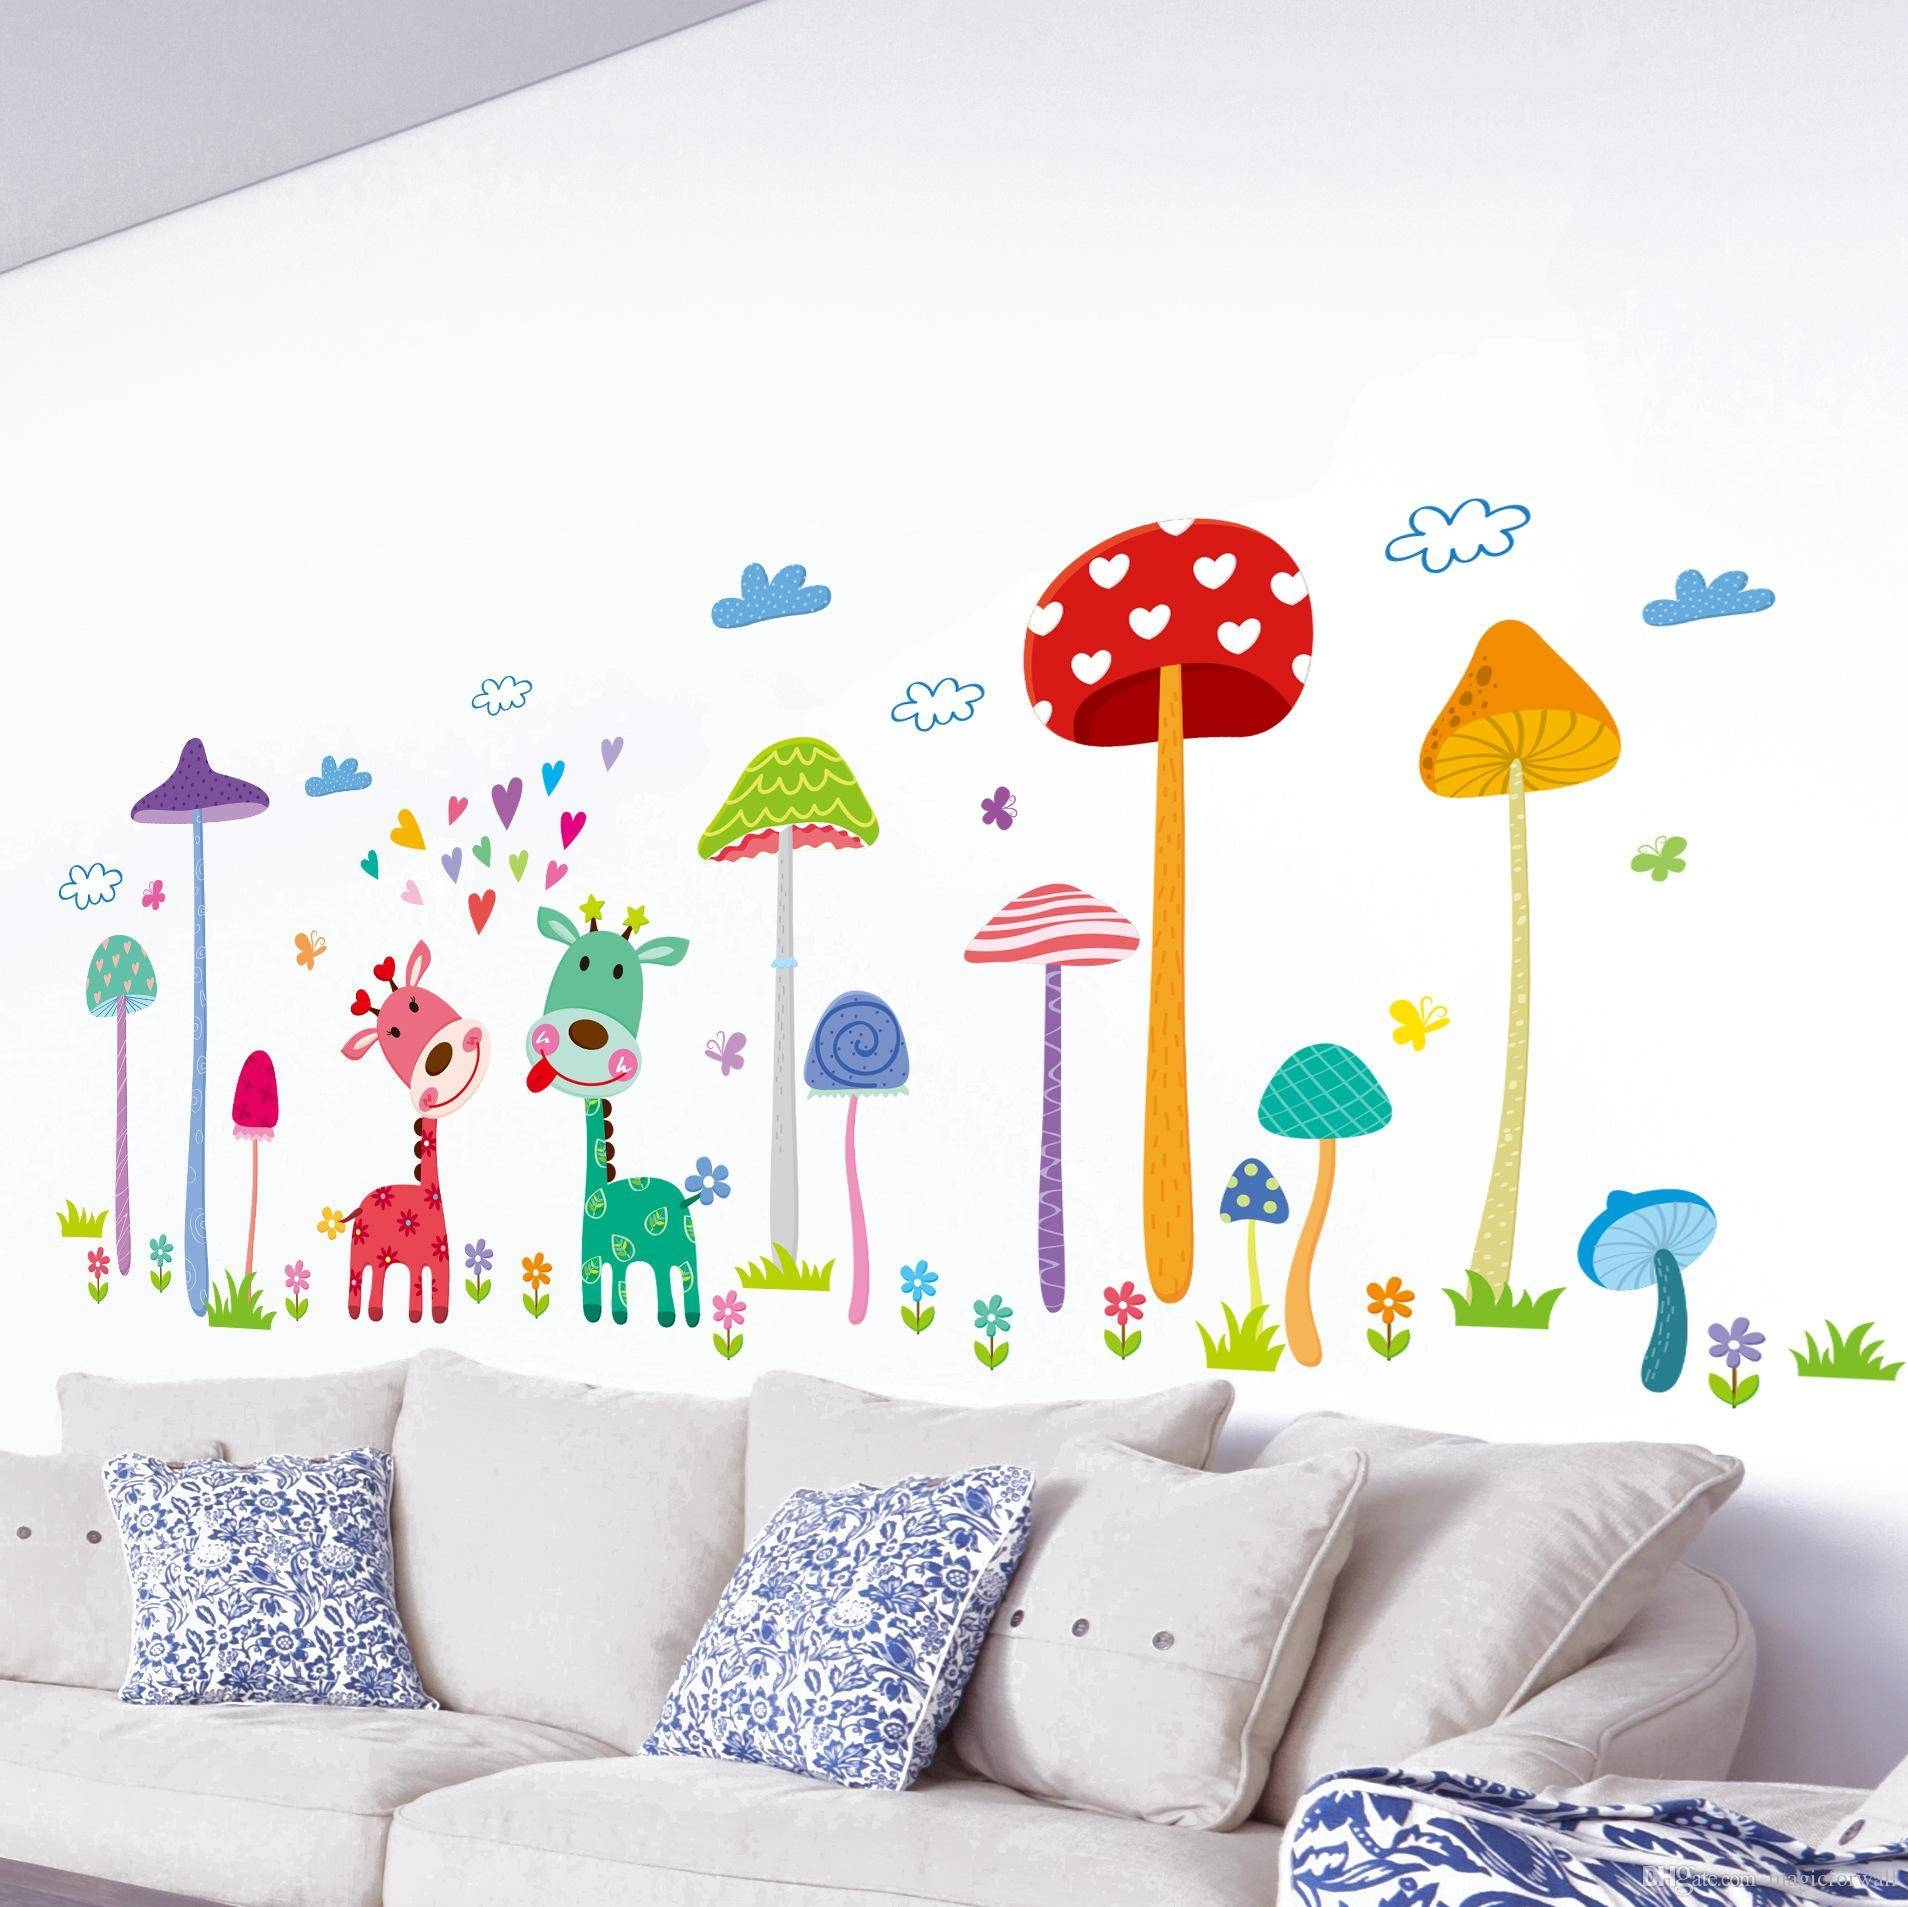 Forest Mushroom Deer Animals Home Wall Art Mural Decor Kids Babies Throughout Newest Baby Animal Wall Art (View 6 of 20)